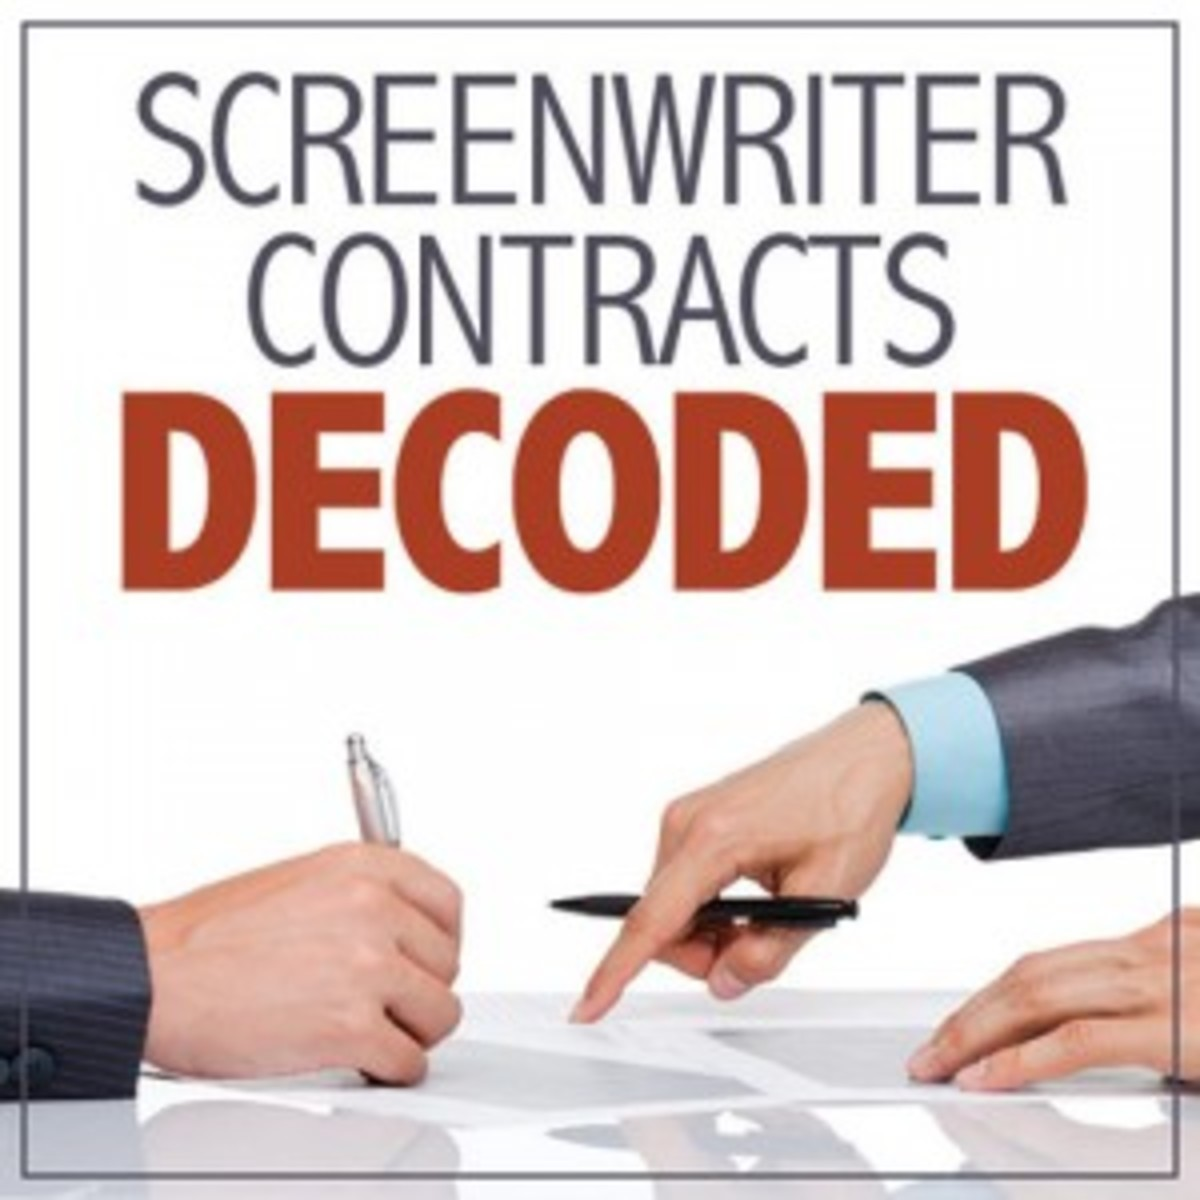 Screenwriter Contracts Decoded